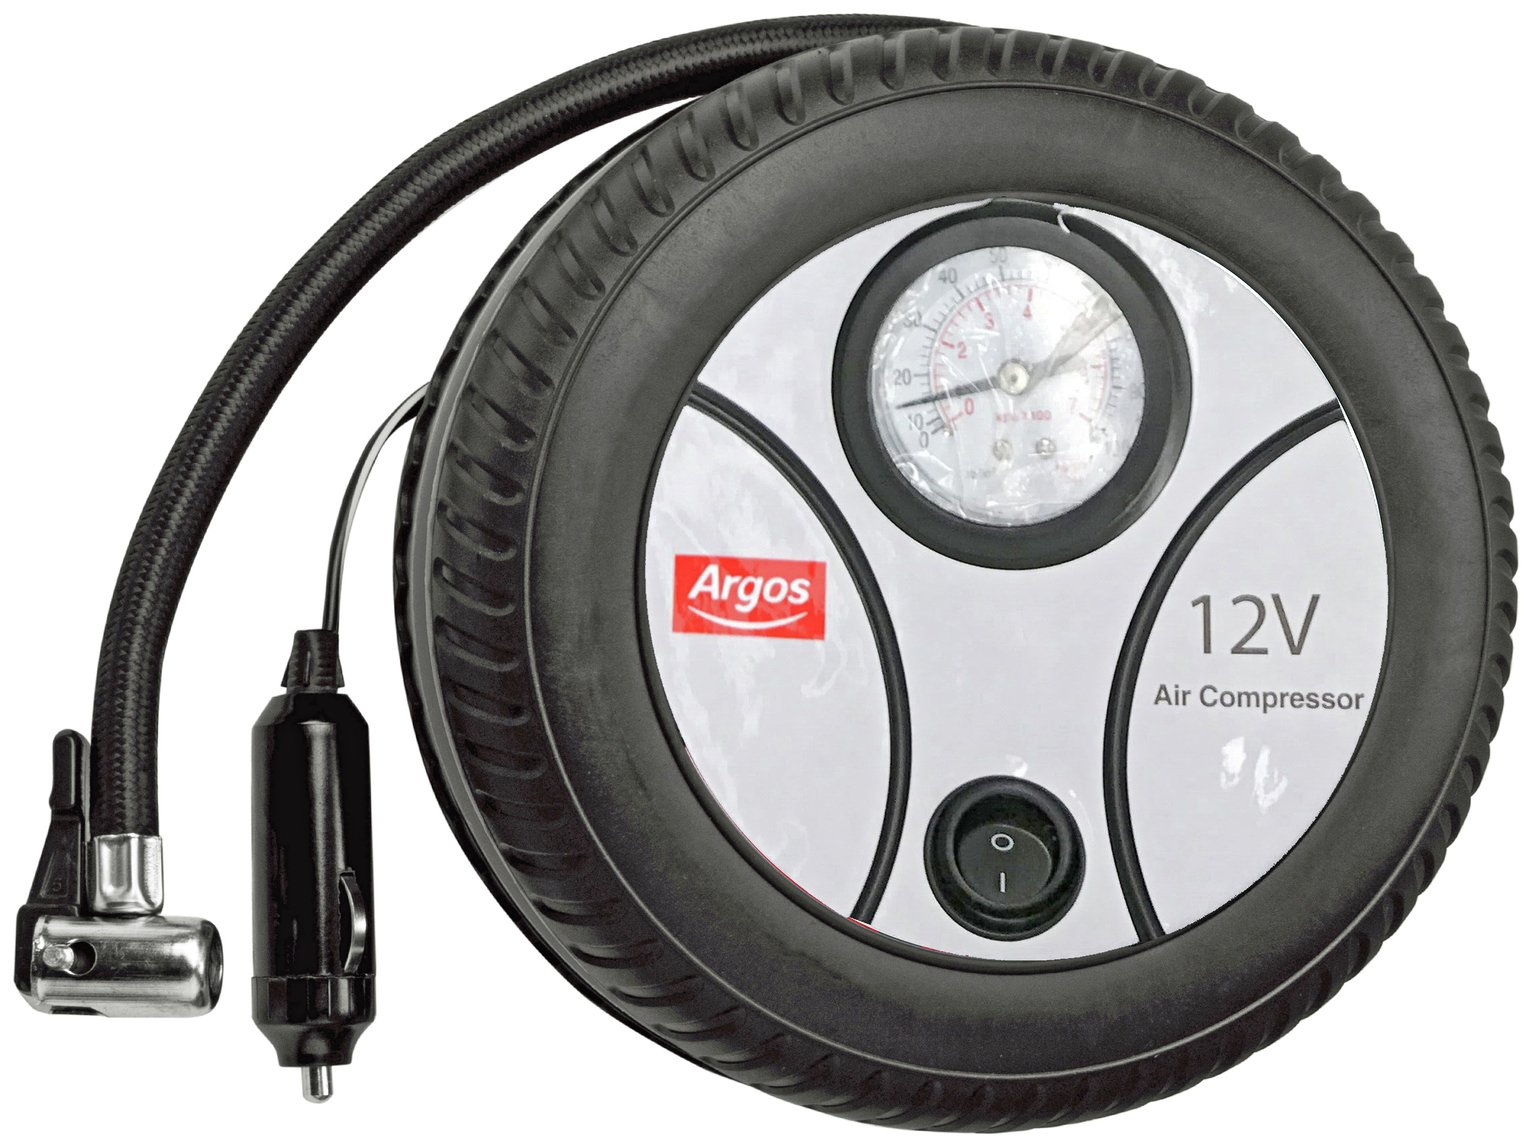 Simple Value Analogue Tyre Inflator review